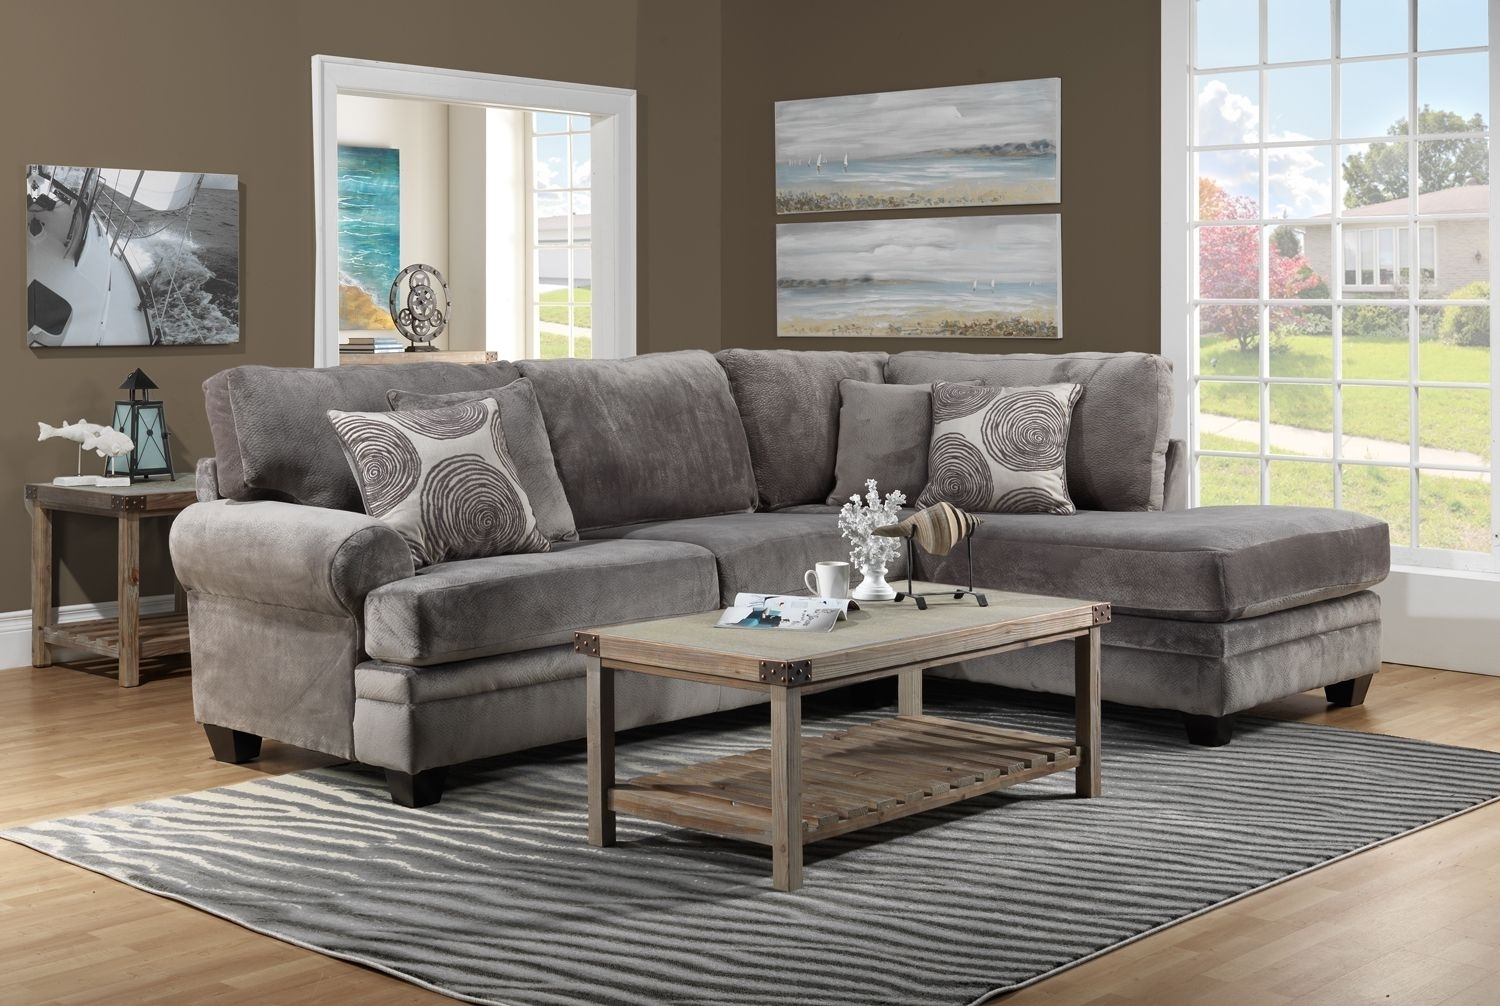 apartment sofas calgary sofa bed inserts leons sectional gradschoolfairs